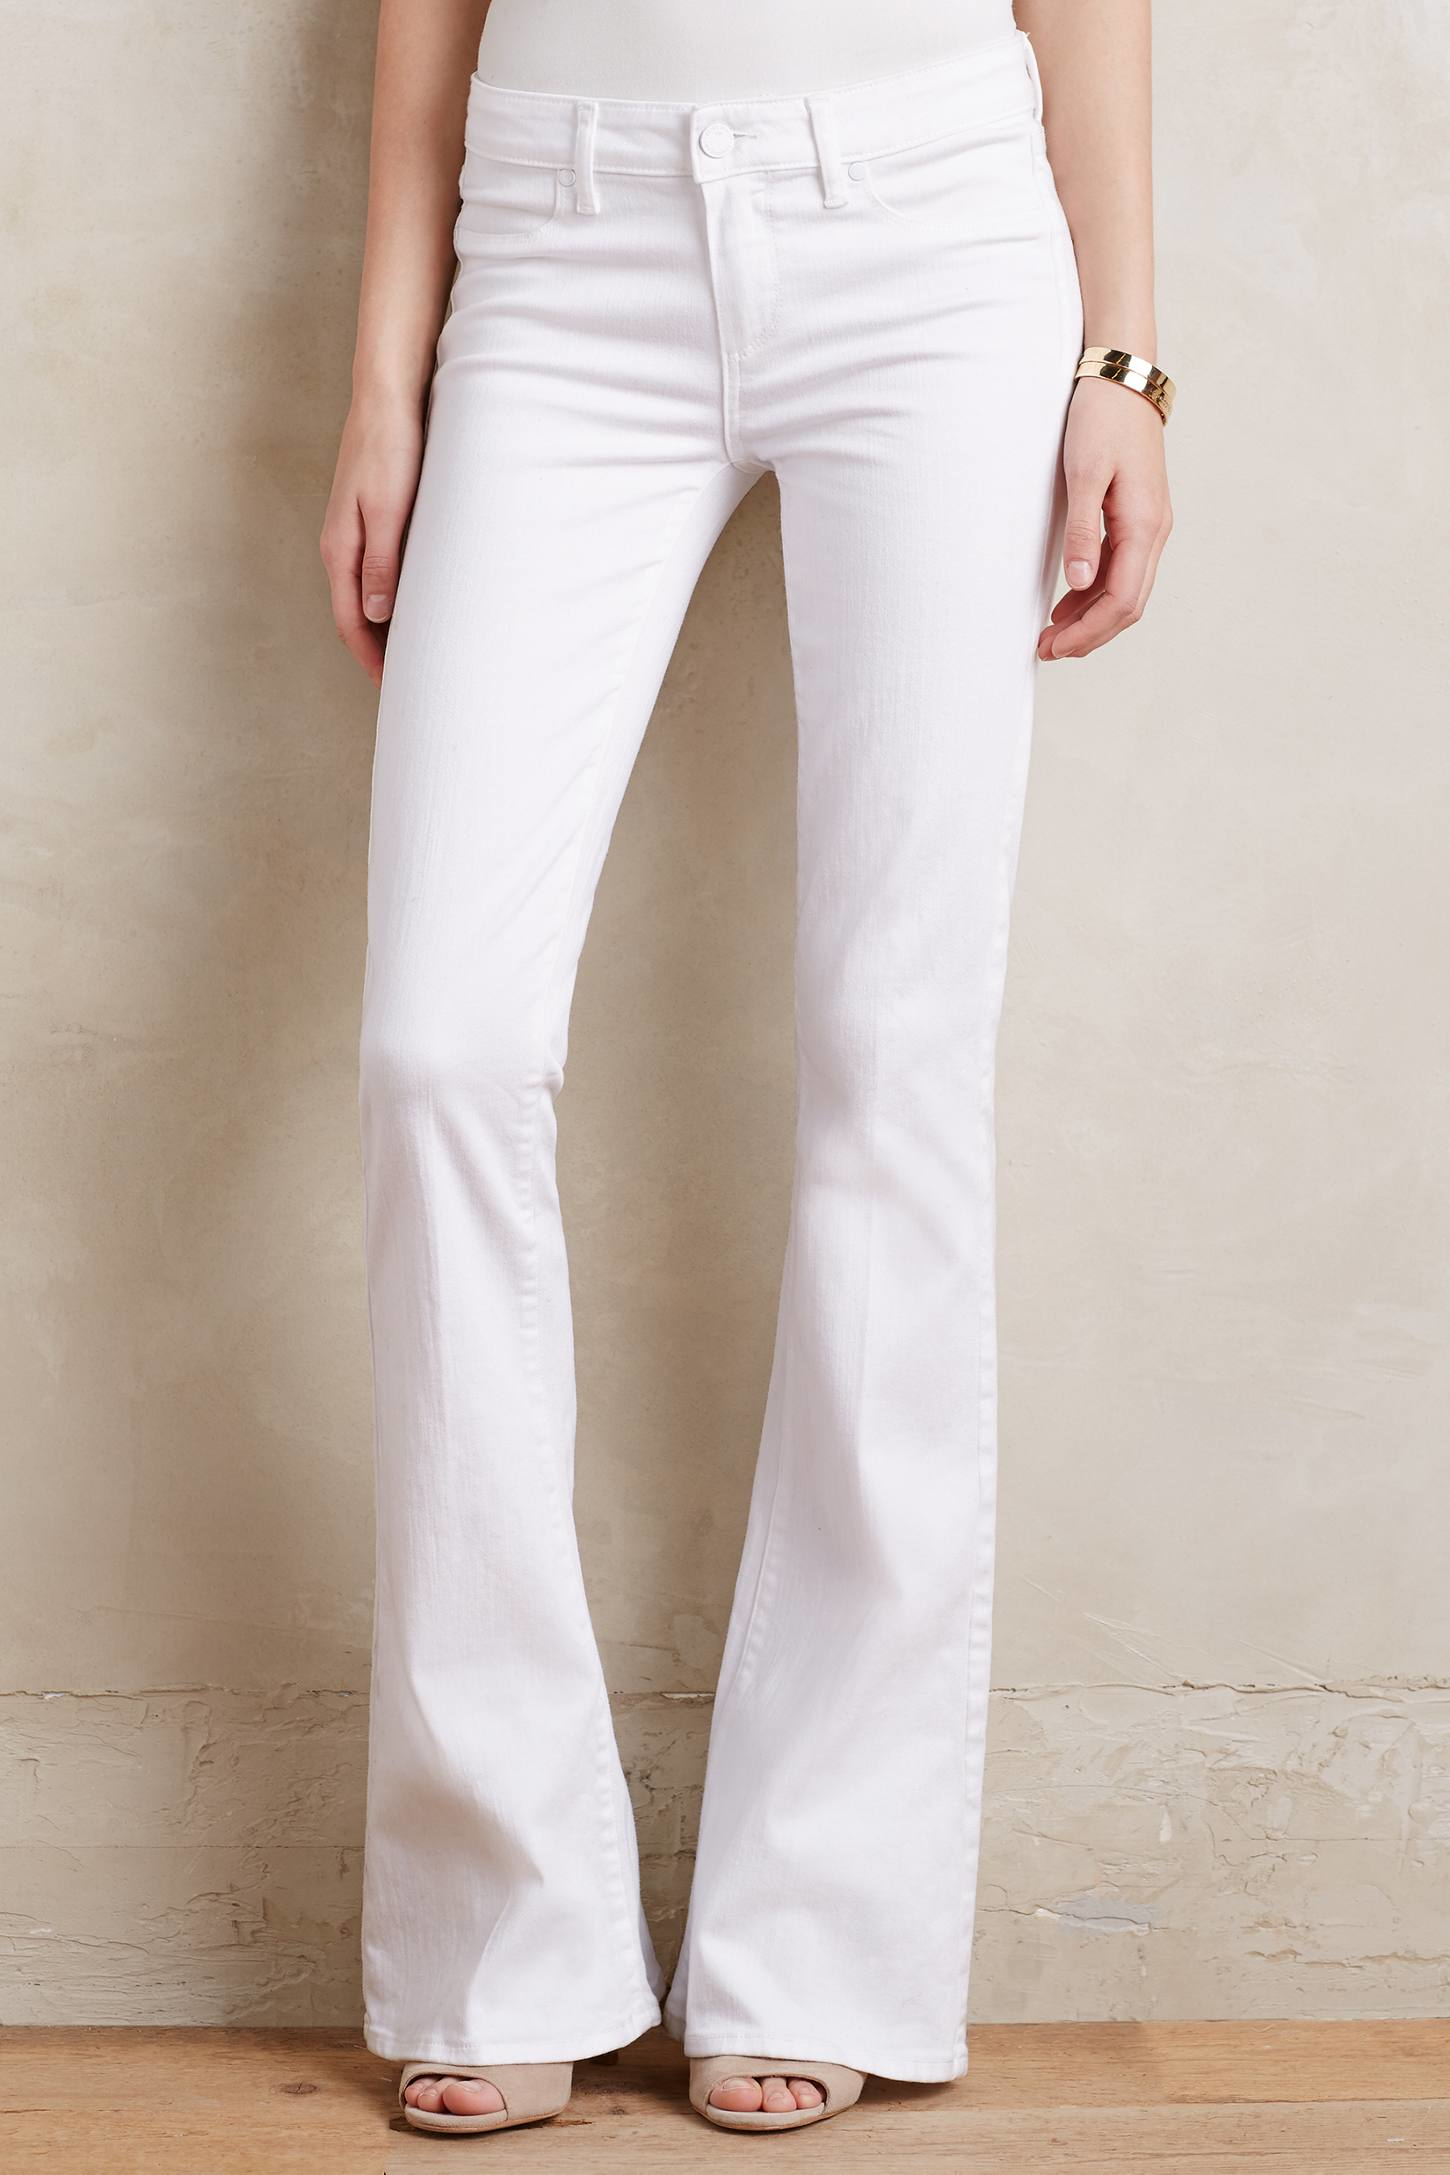 Paige Lou Lou Mid-rise Petite Flare Jeans in White | Lyst